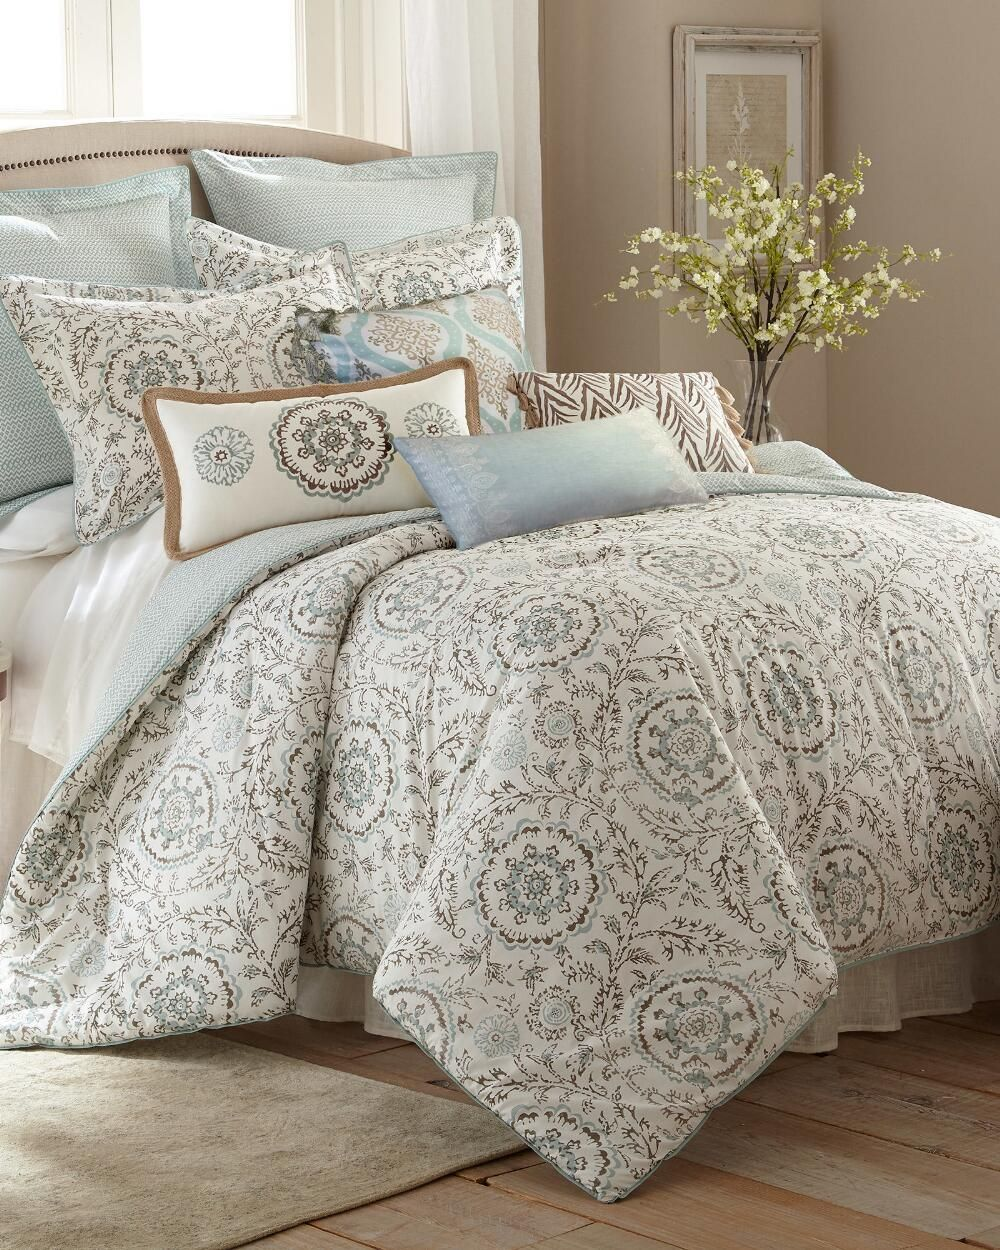 Exclusively Ours - 5 Piece Capella Comforter Set | Comforter ... on